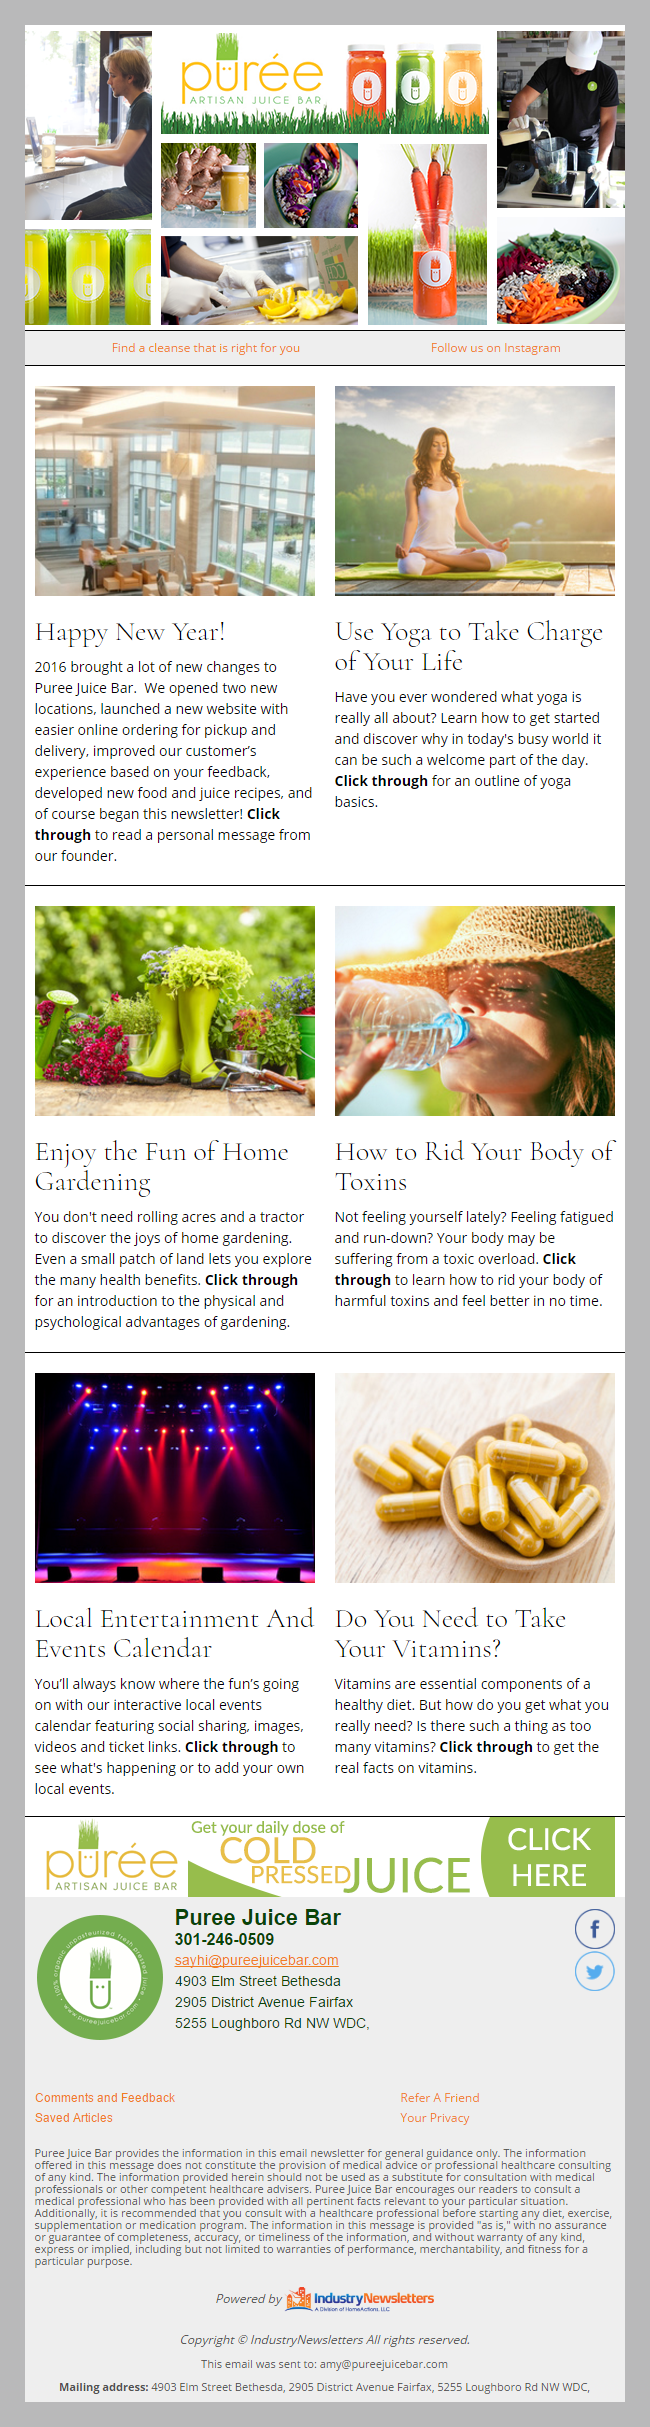 Puree Artisan Juice Bar health and wellness Email Newsletter Preview